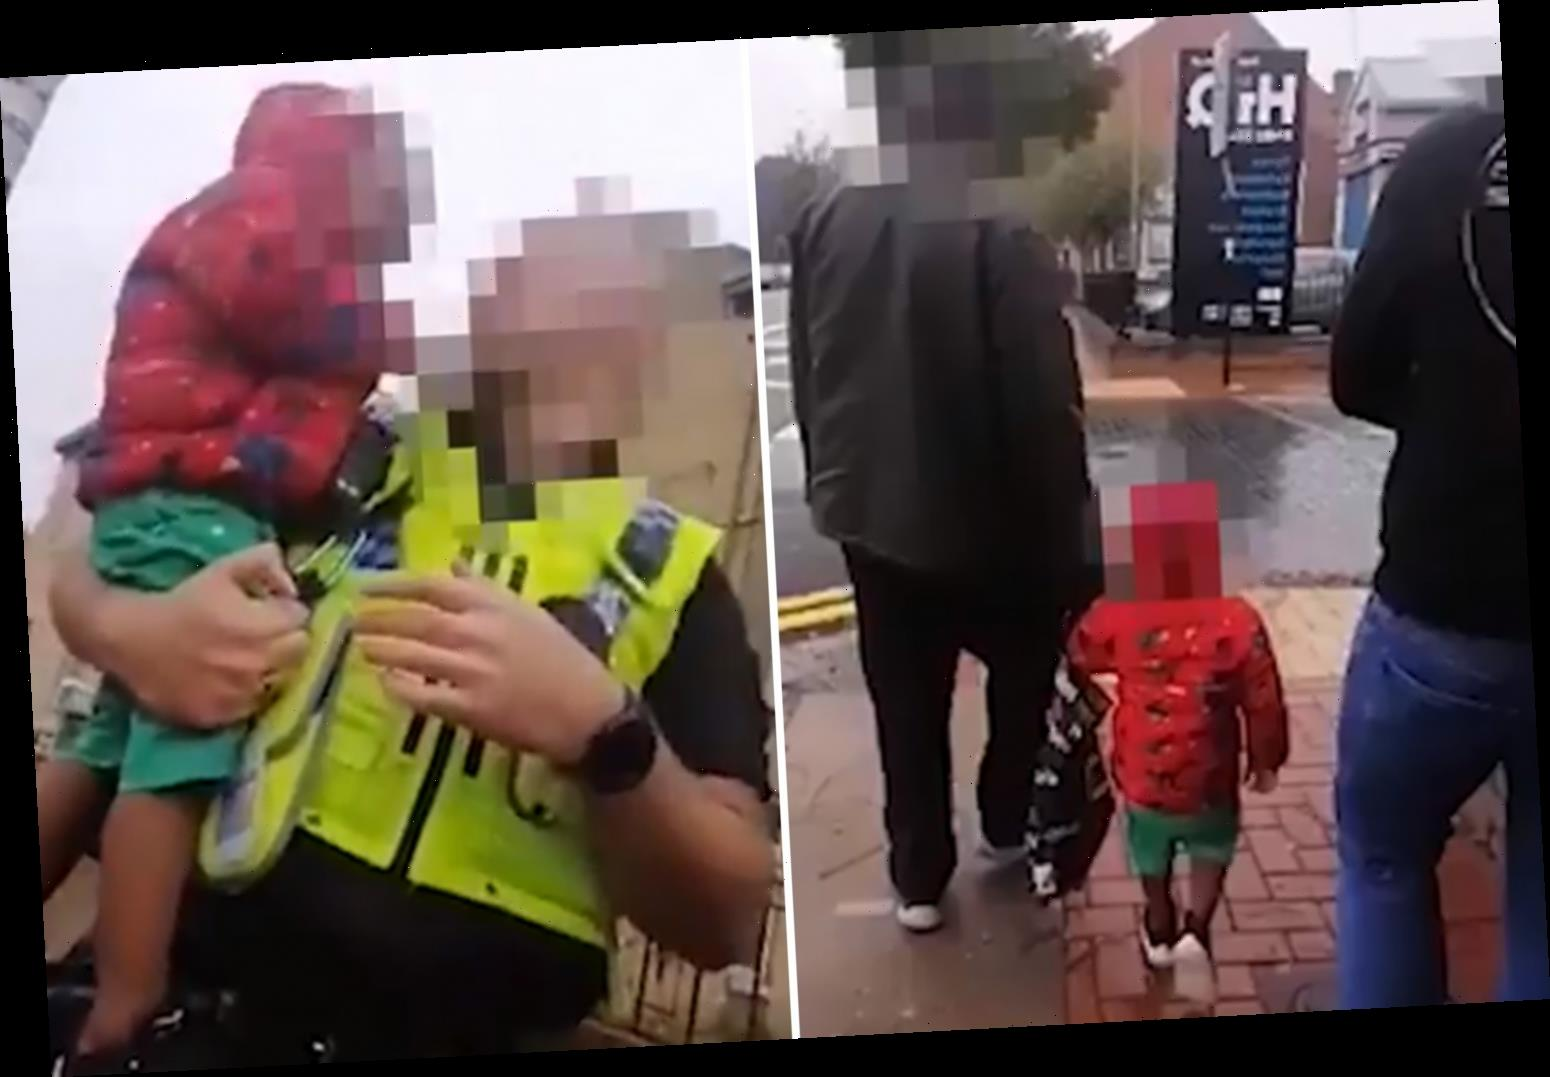 Sobbing toddler found wandering Hull streets completely ALONE until hero passer-by saves him and calls police